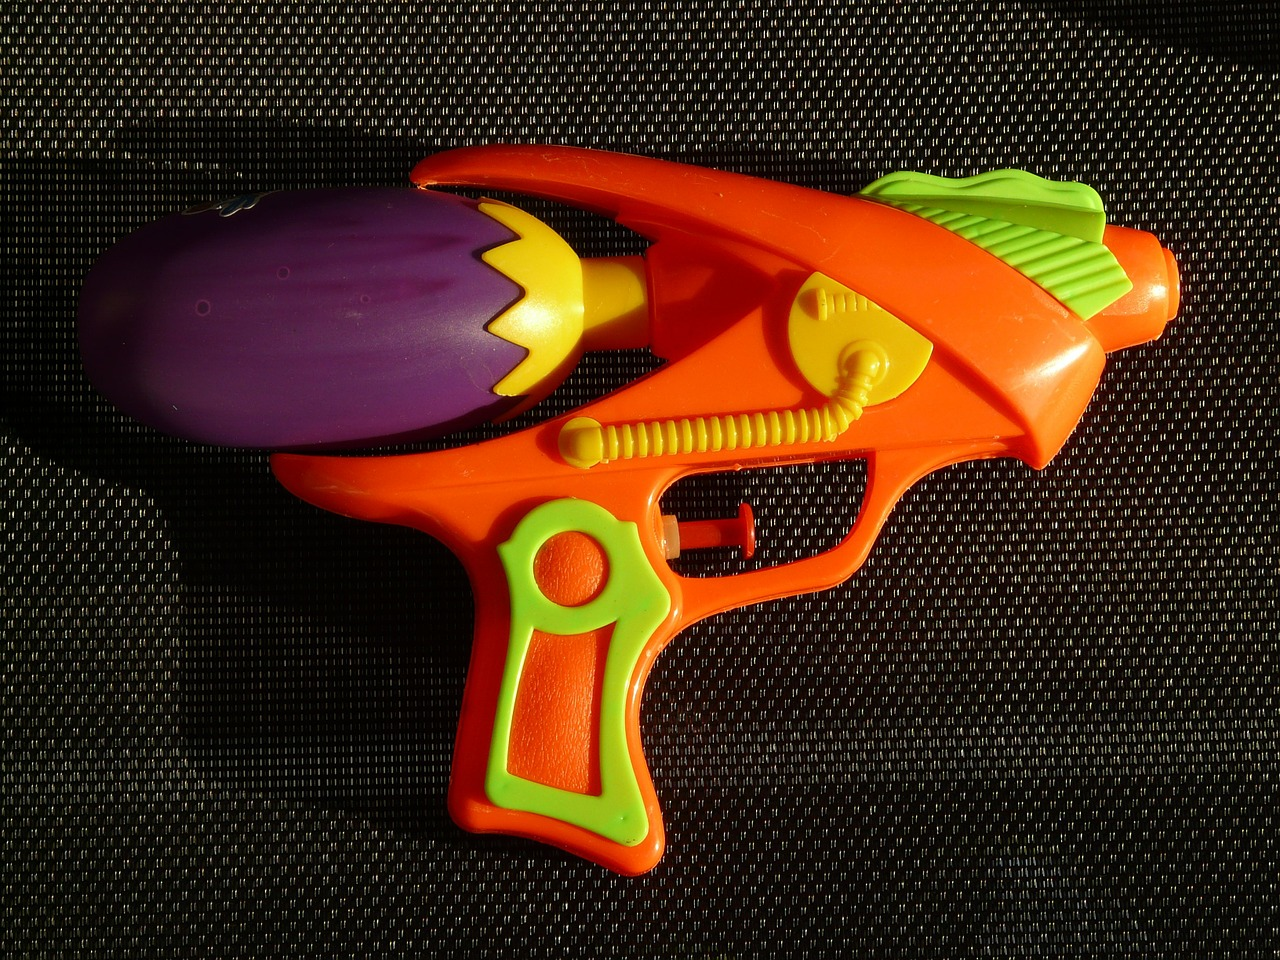 water gun spray gun pistol free photo